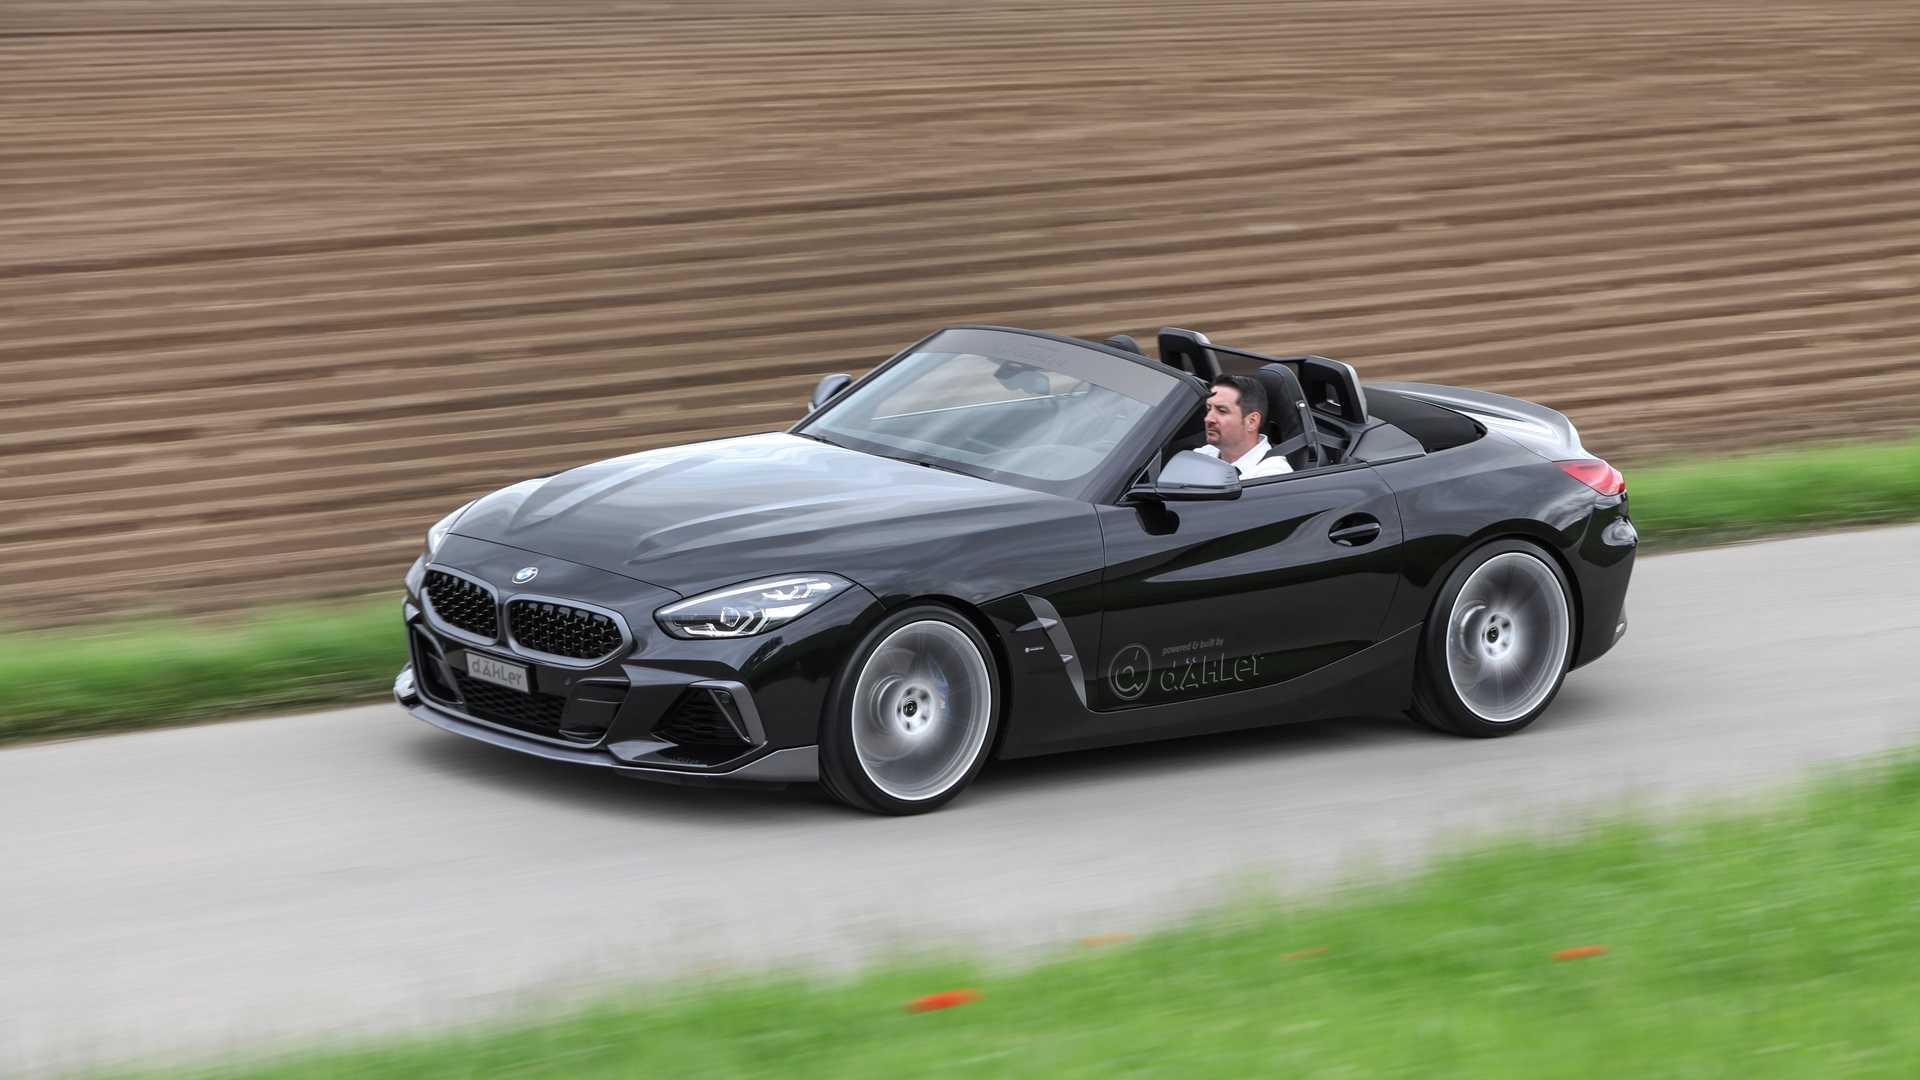 BMW-Z4-M40i-by-Dahler-3